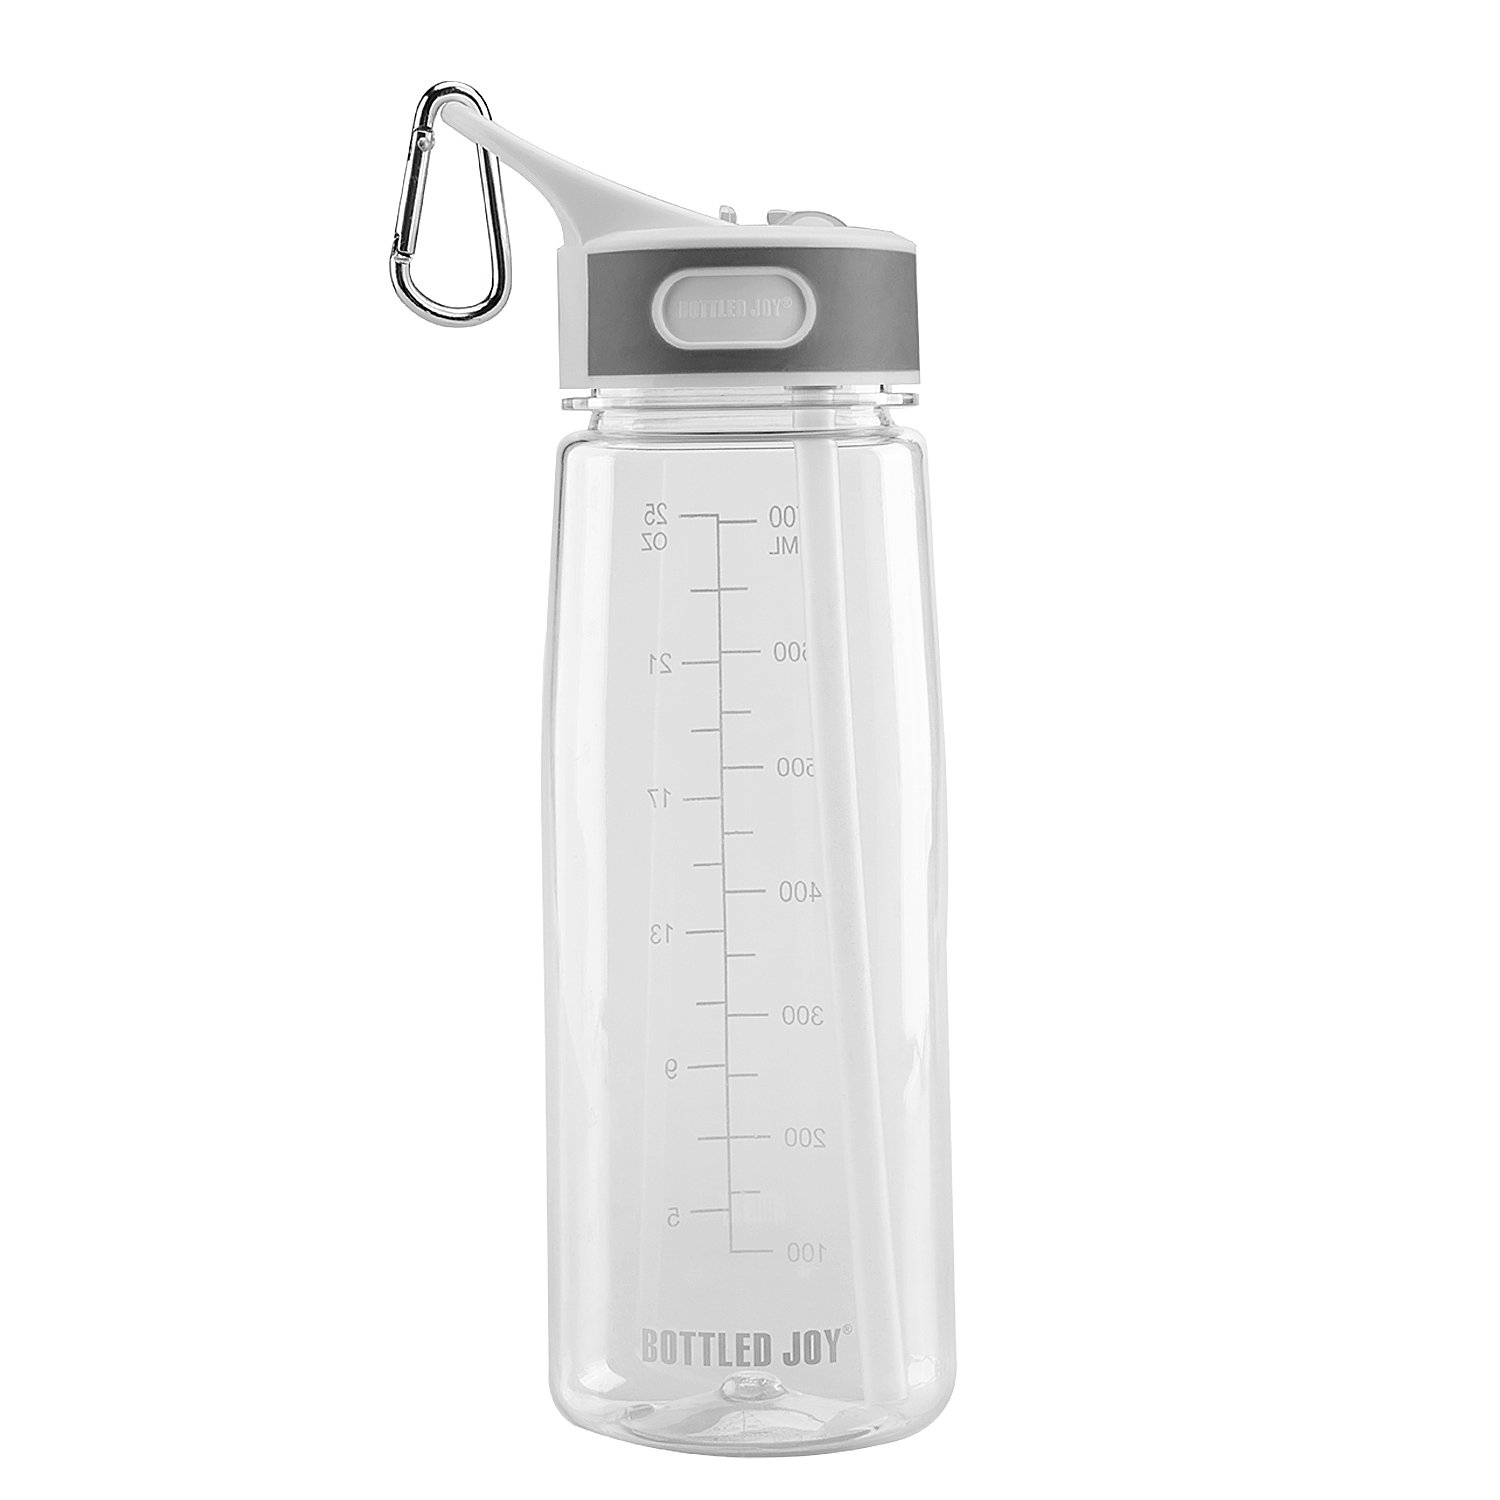 Spill Leak Proof Tritan Sports Drinking Water Bottle For Camping Gym Bicycle Home Office 27oz Ounce 800ml BOTTLED JOY BRP FREE Sports Bottle With Flip-top and Mixed Ball